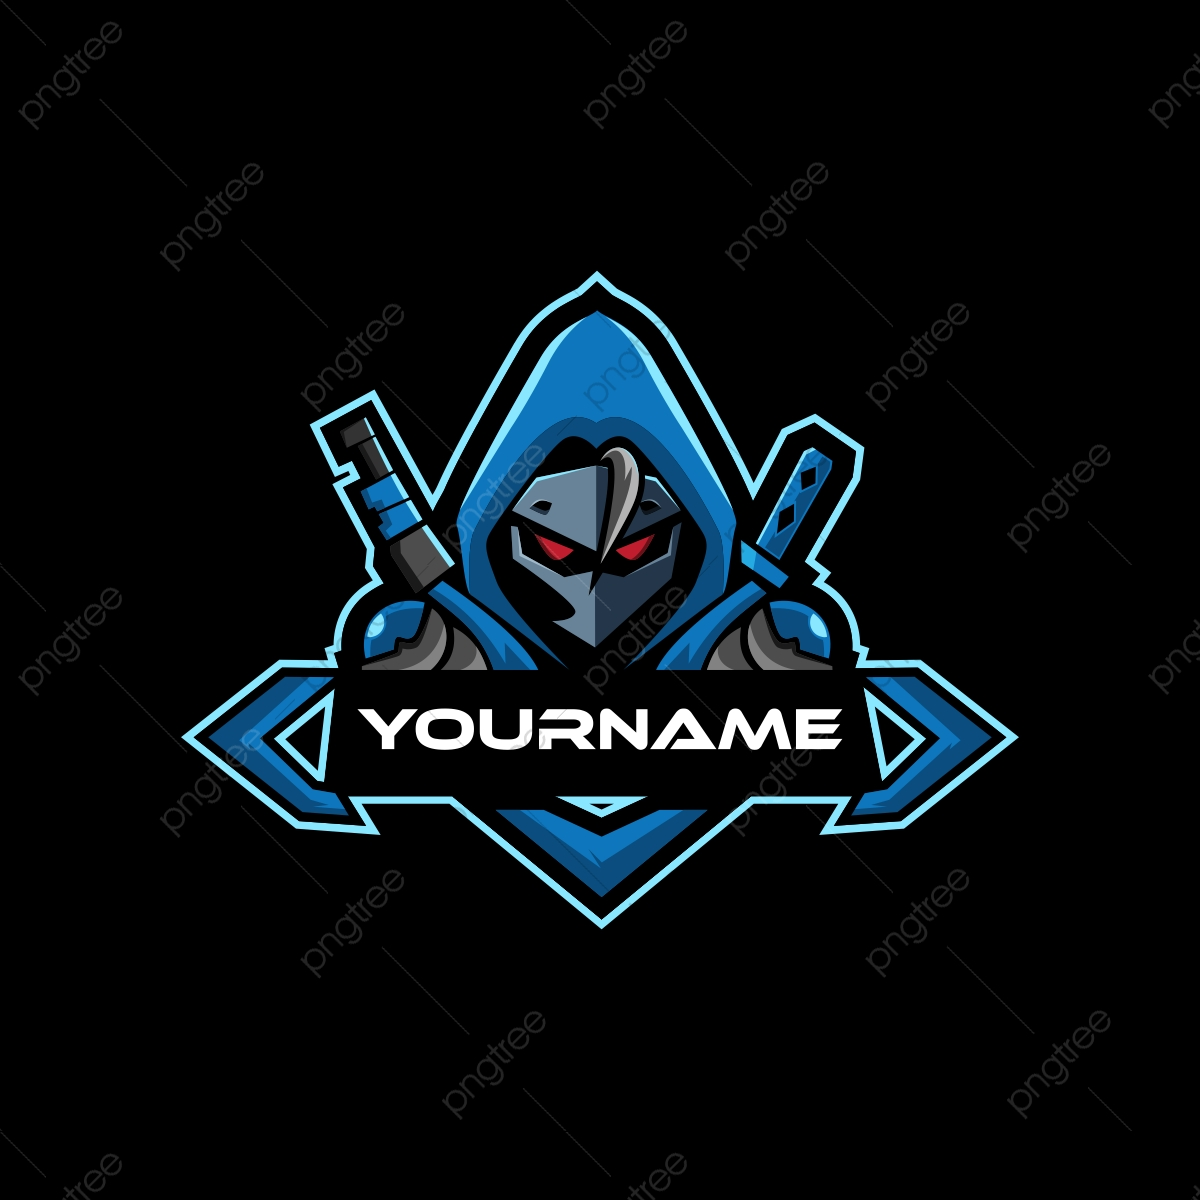 Blue Samurai Esports Logo For Mascot Gaming Template For Free Download On Pngtree